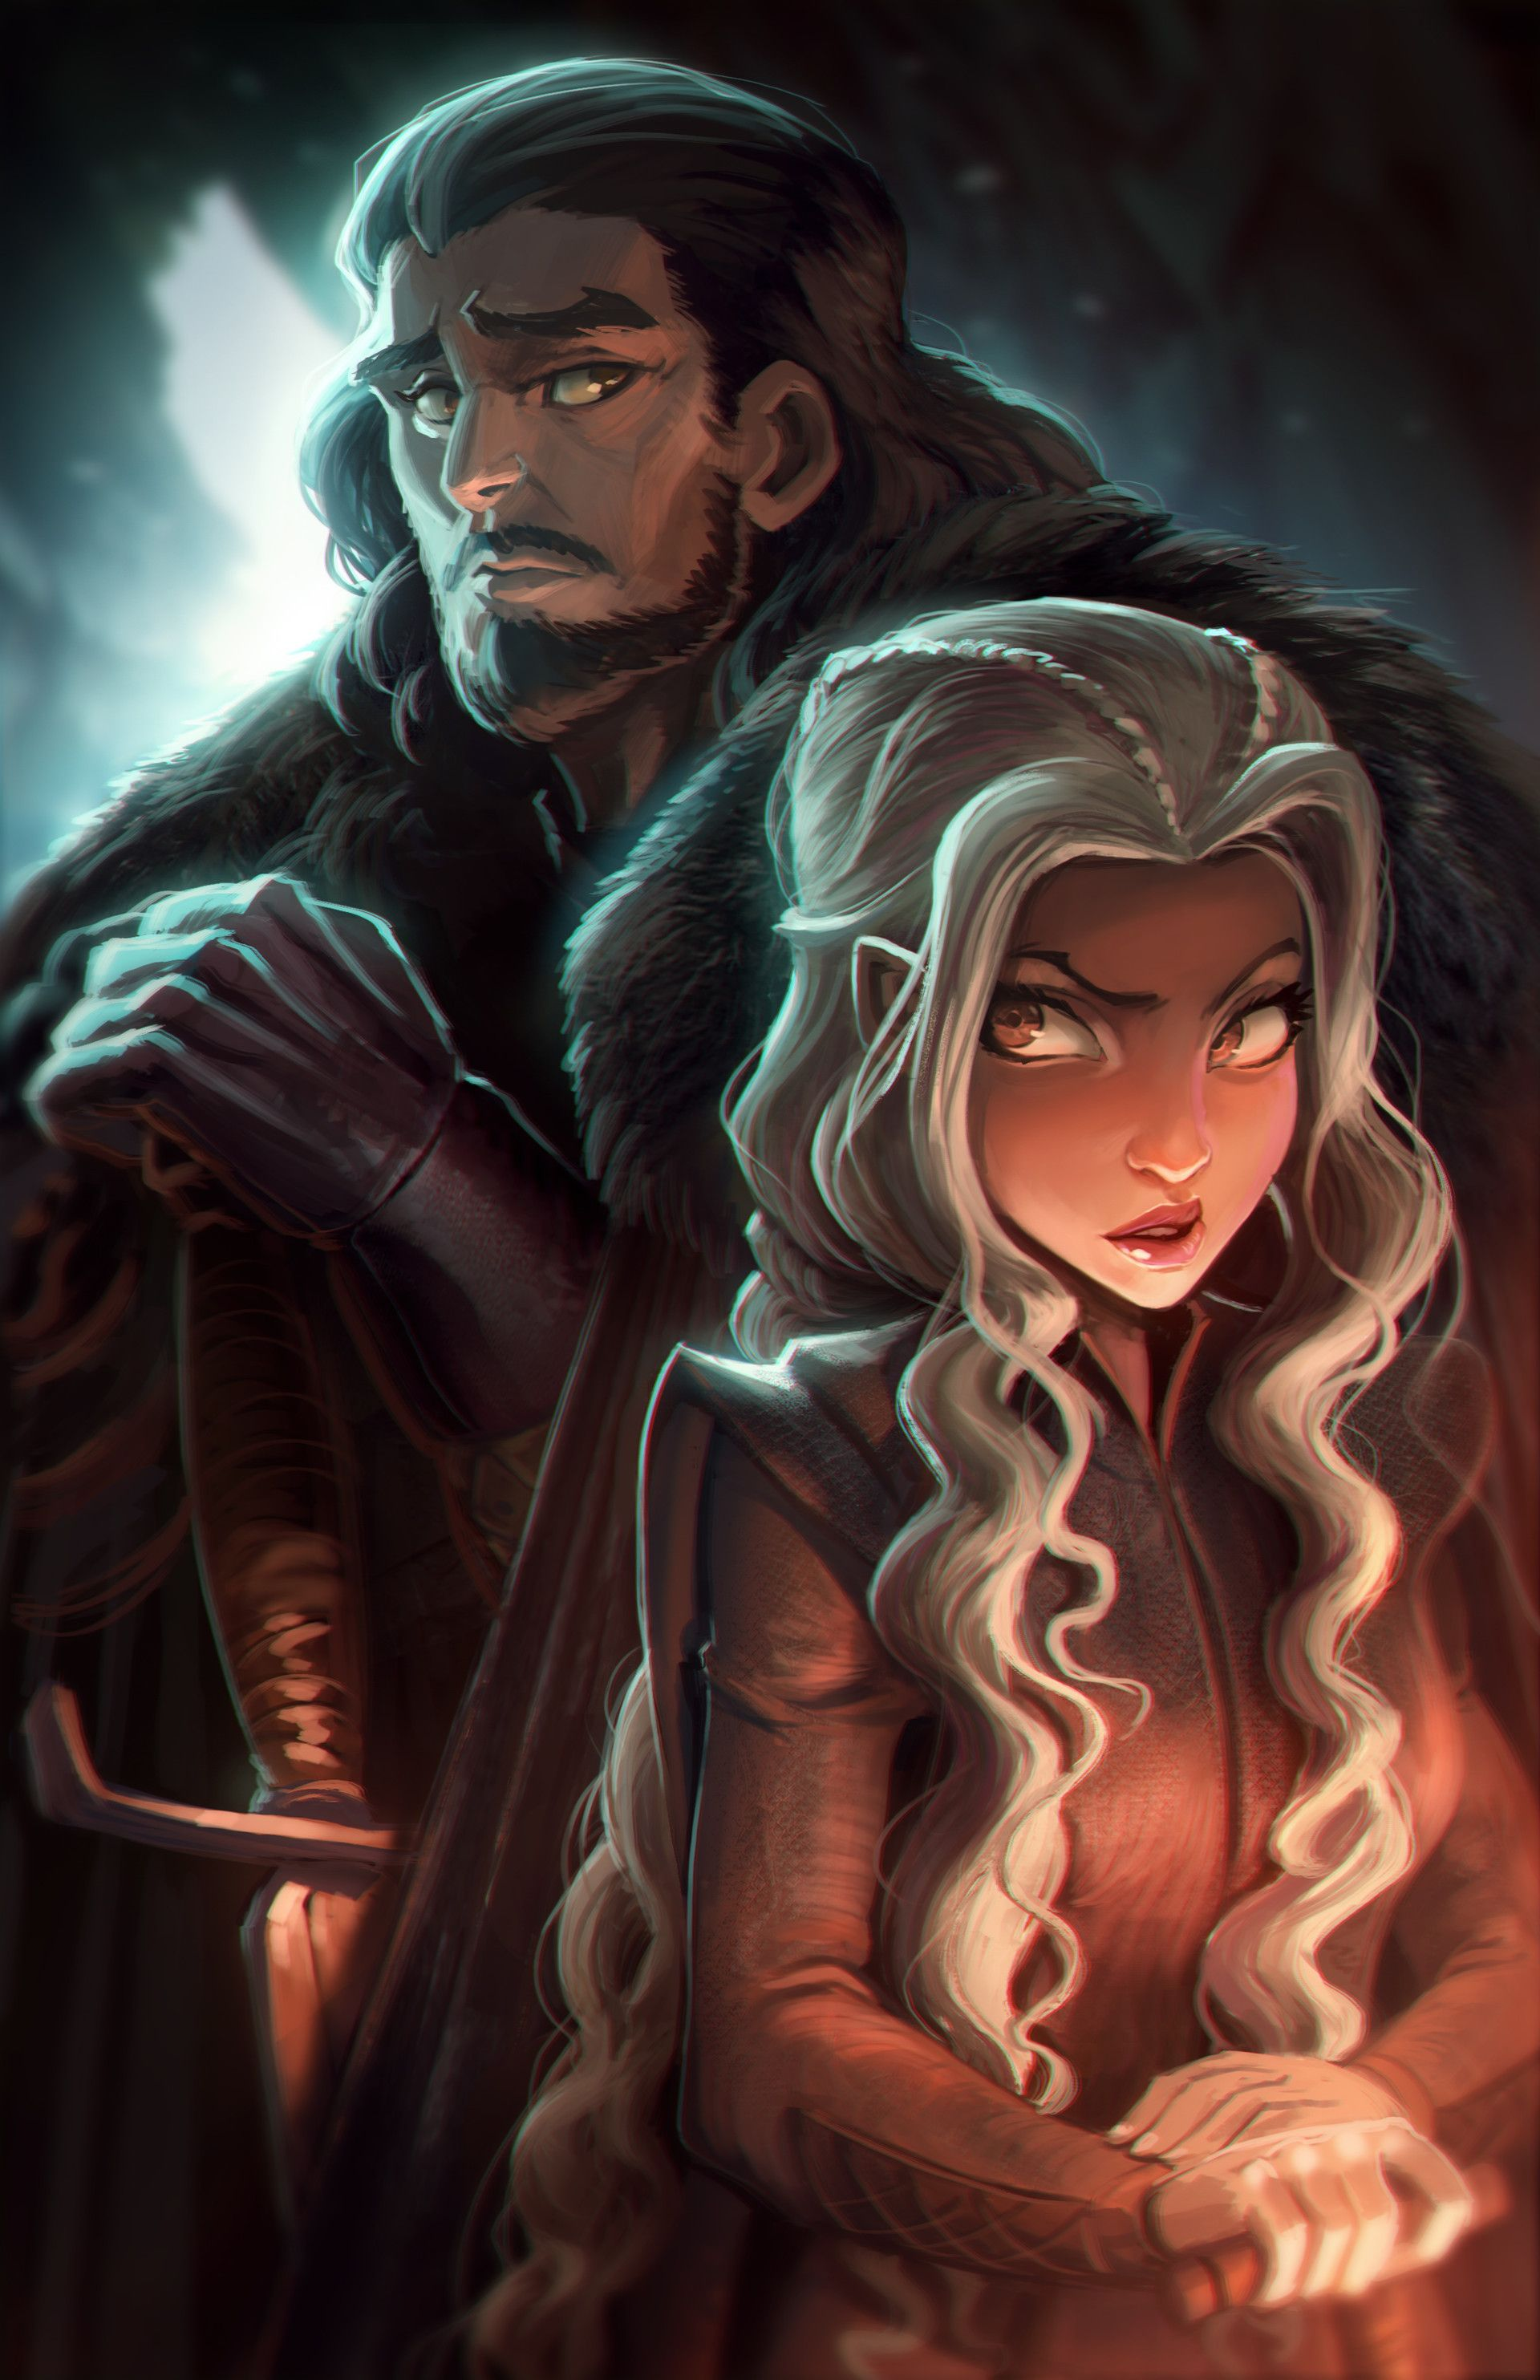 Danerys And Jon Snow Colin Searle Game Of Thrones Artwork Game Of Thrones Art Targaryen Art